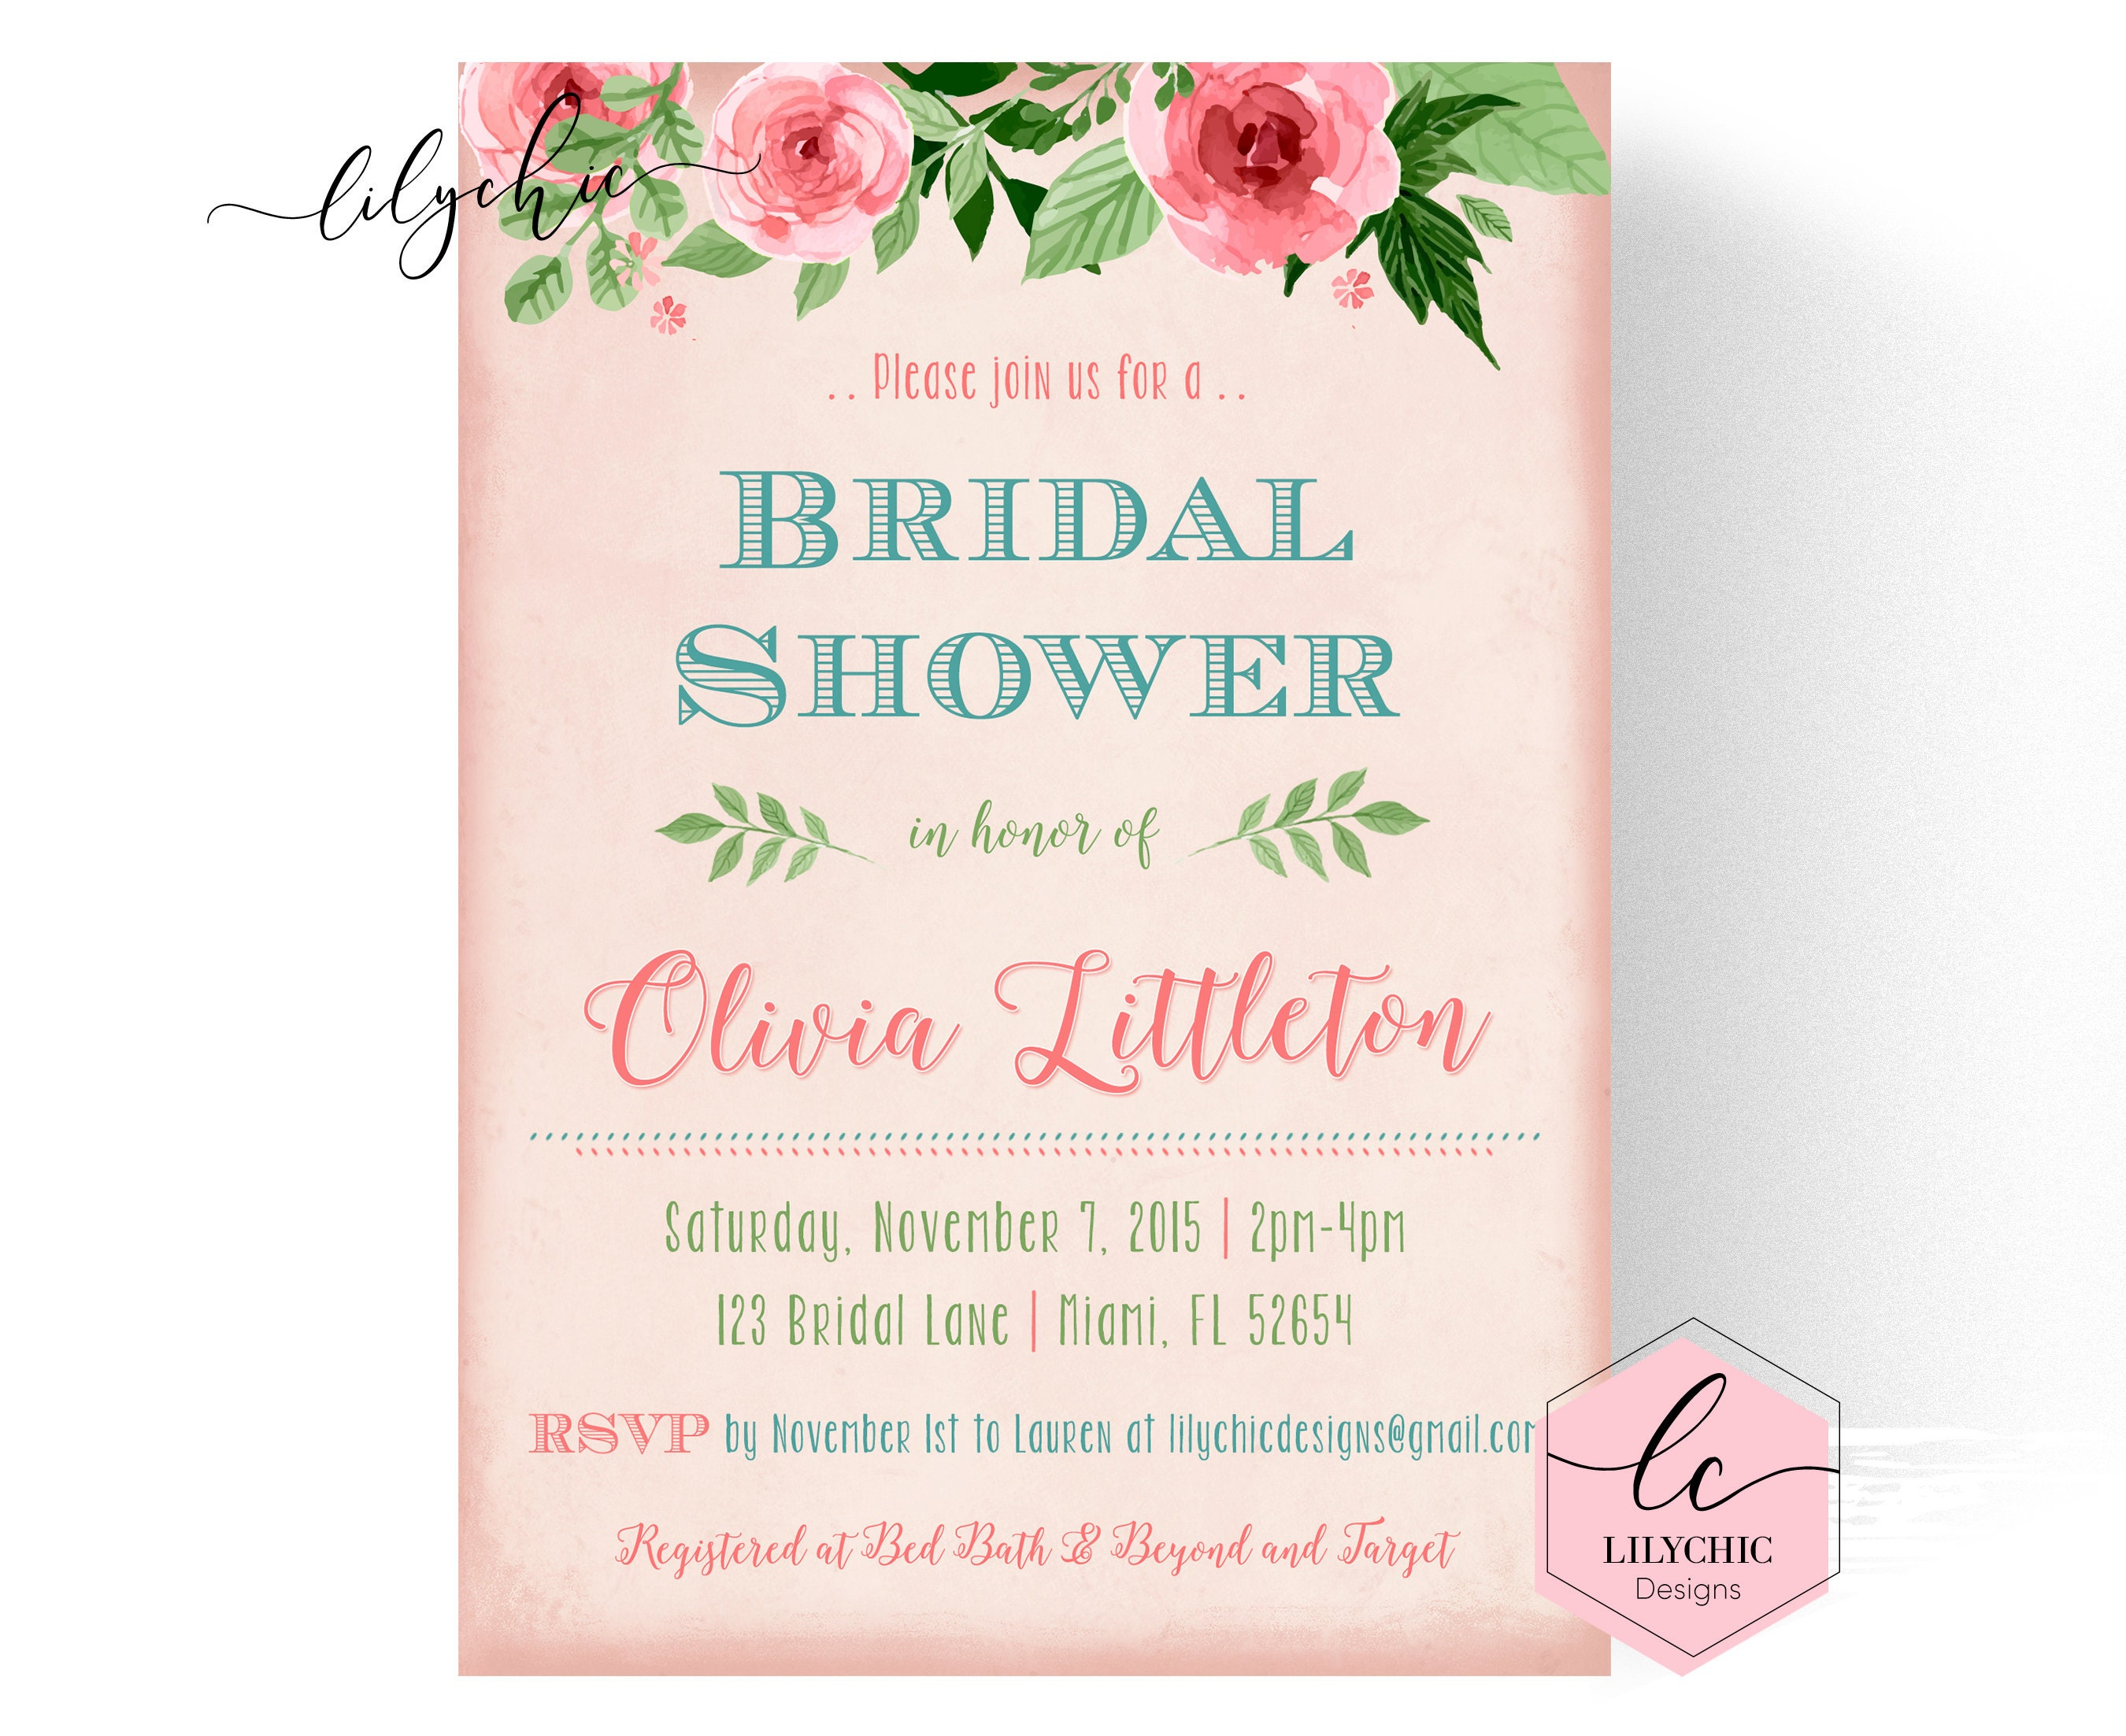 It's just a picture of Printable Bridal Shower Invitations with blue